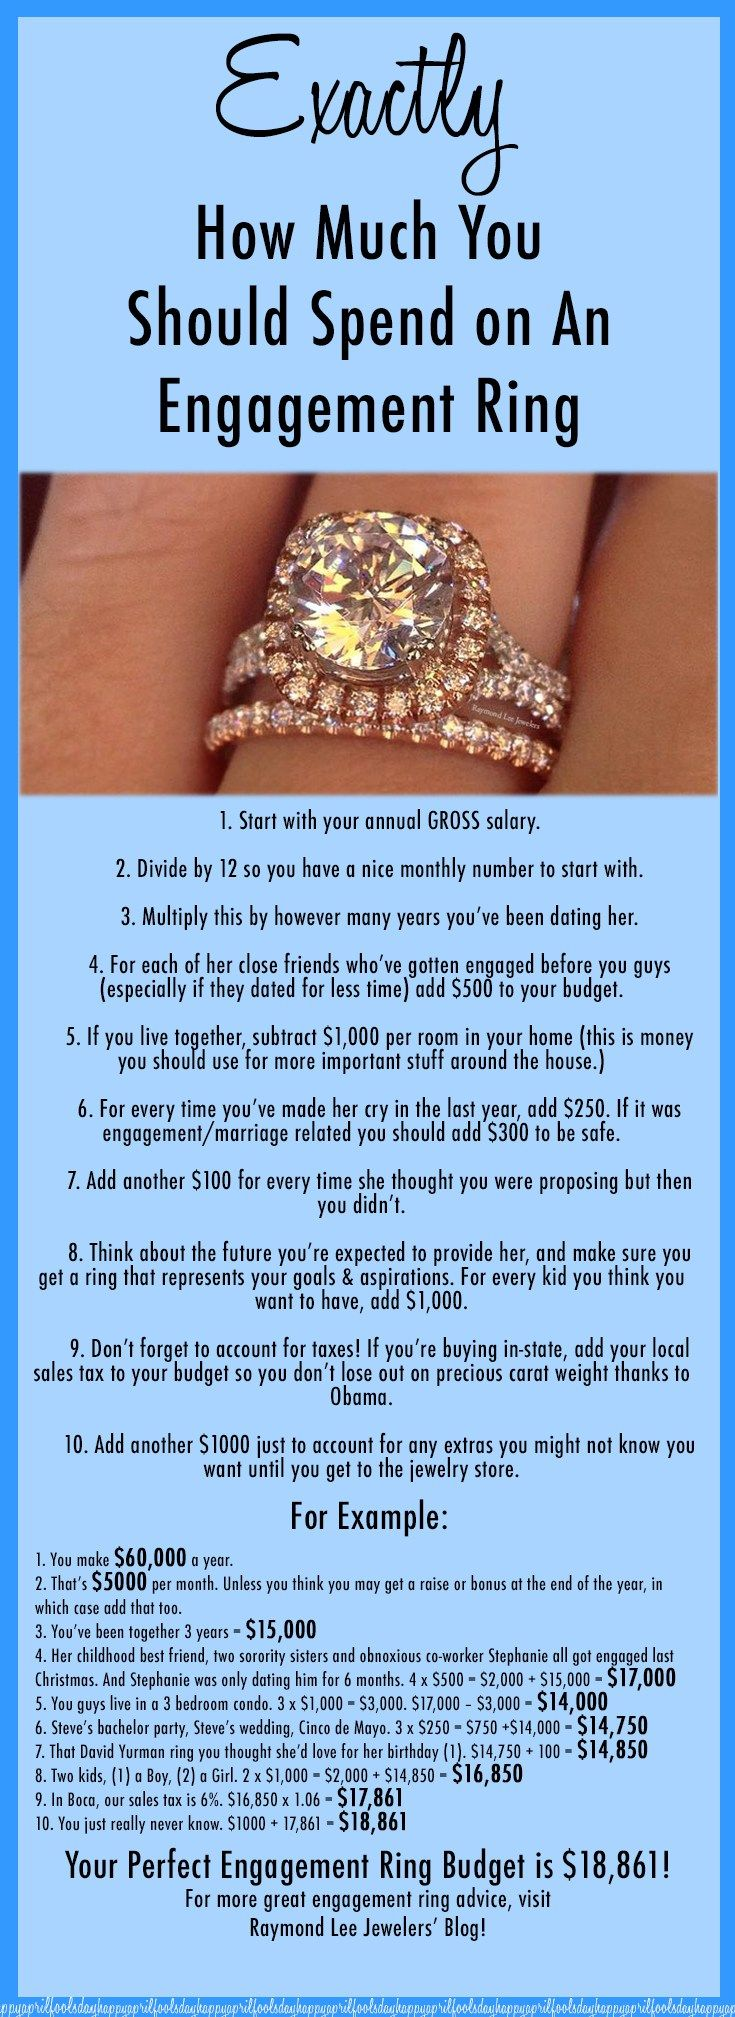 How Much Should You Spend On An Engagement Ring Wedding Rings Engagement Engagement Rings Engagement